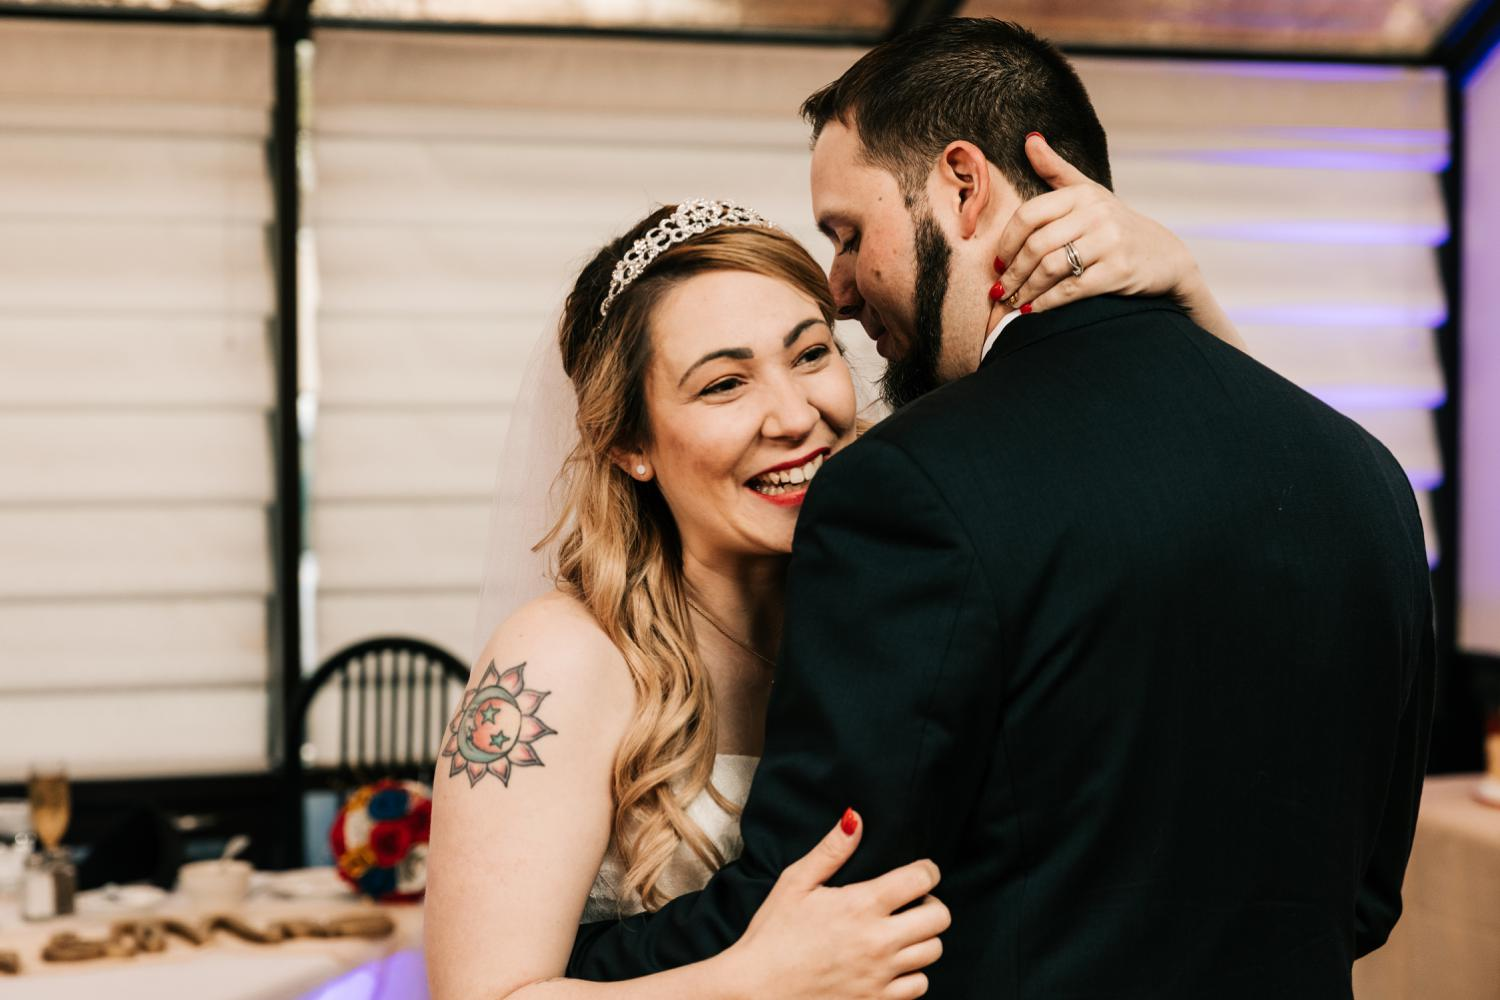 Tattooed bride and groom's first dance